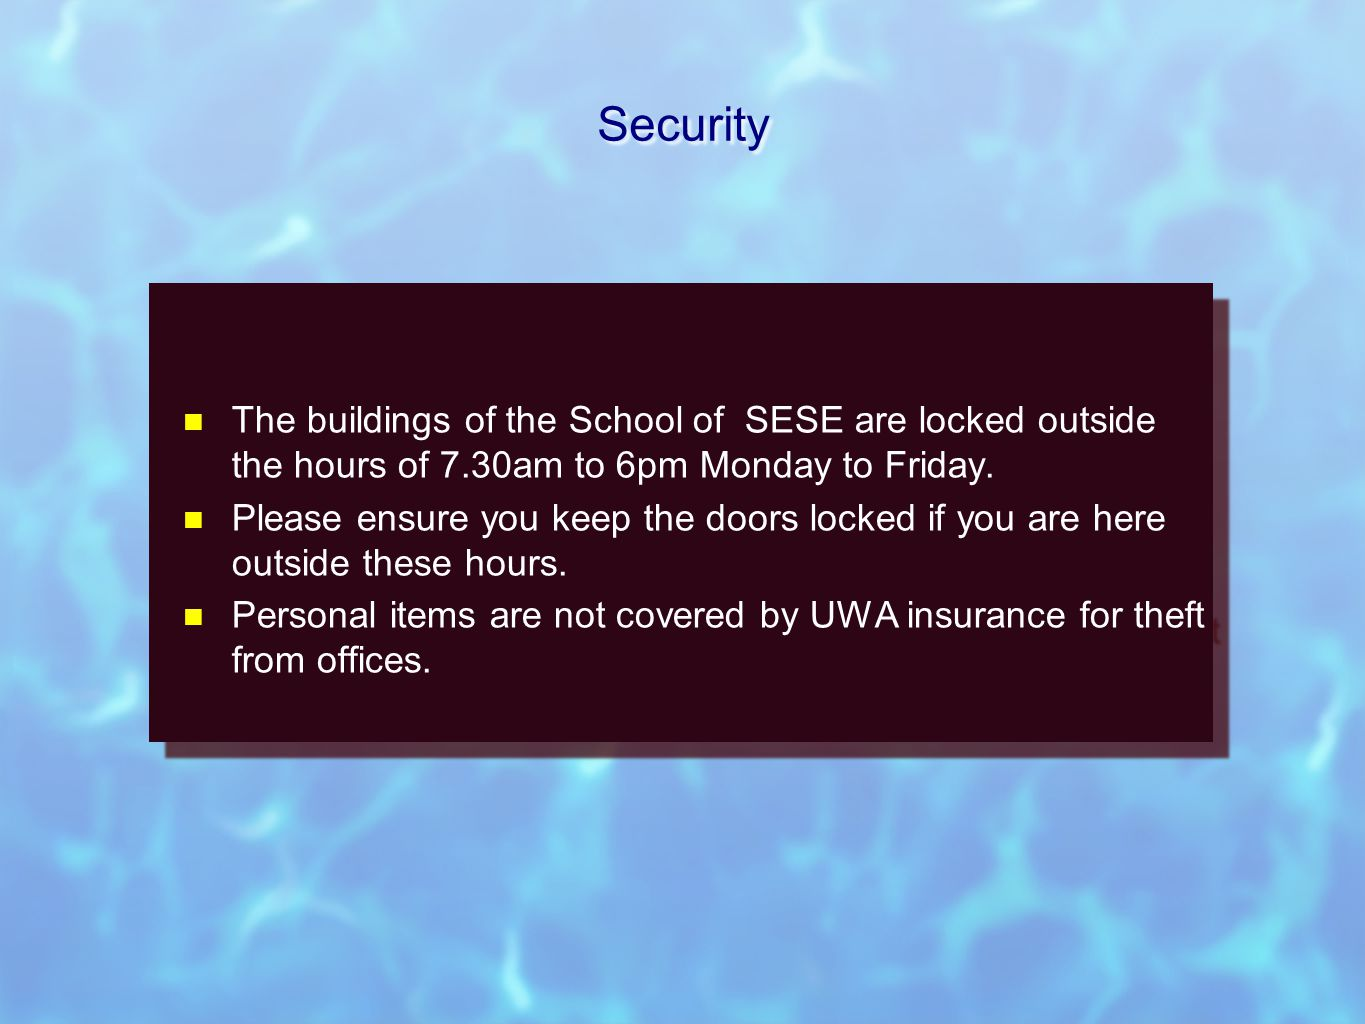 Security The buildings of the School of SESE are locked outside the hours of 7.30am to 6pm Monday to Friday.